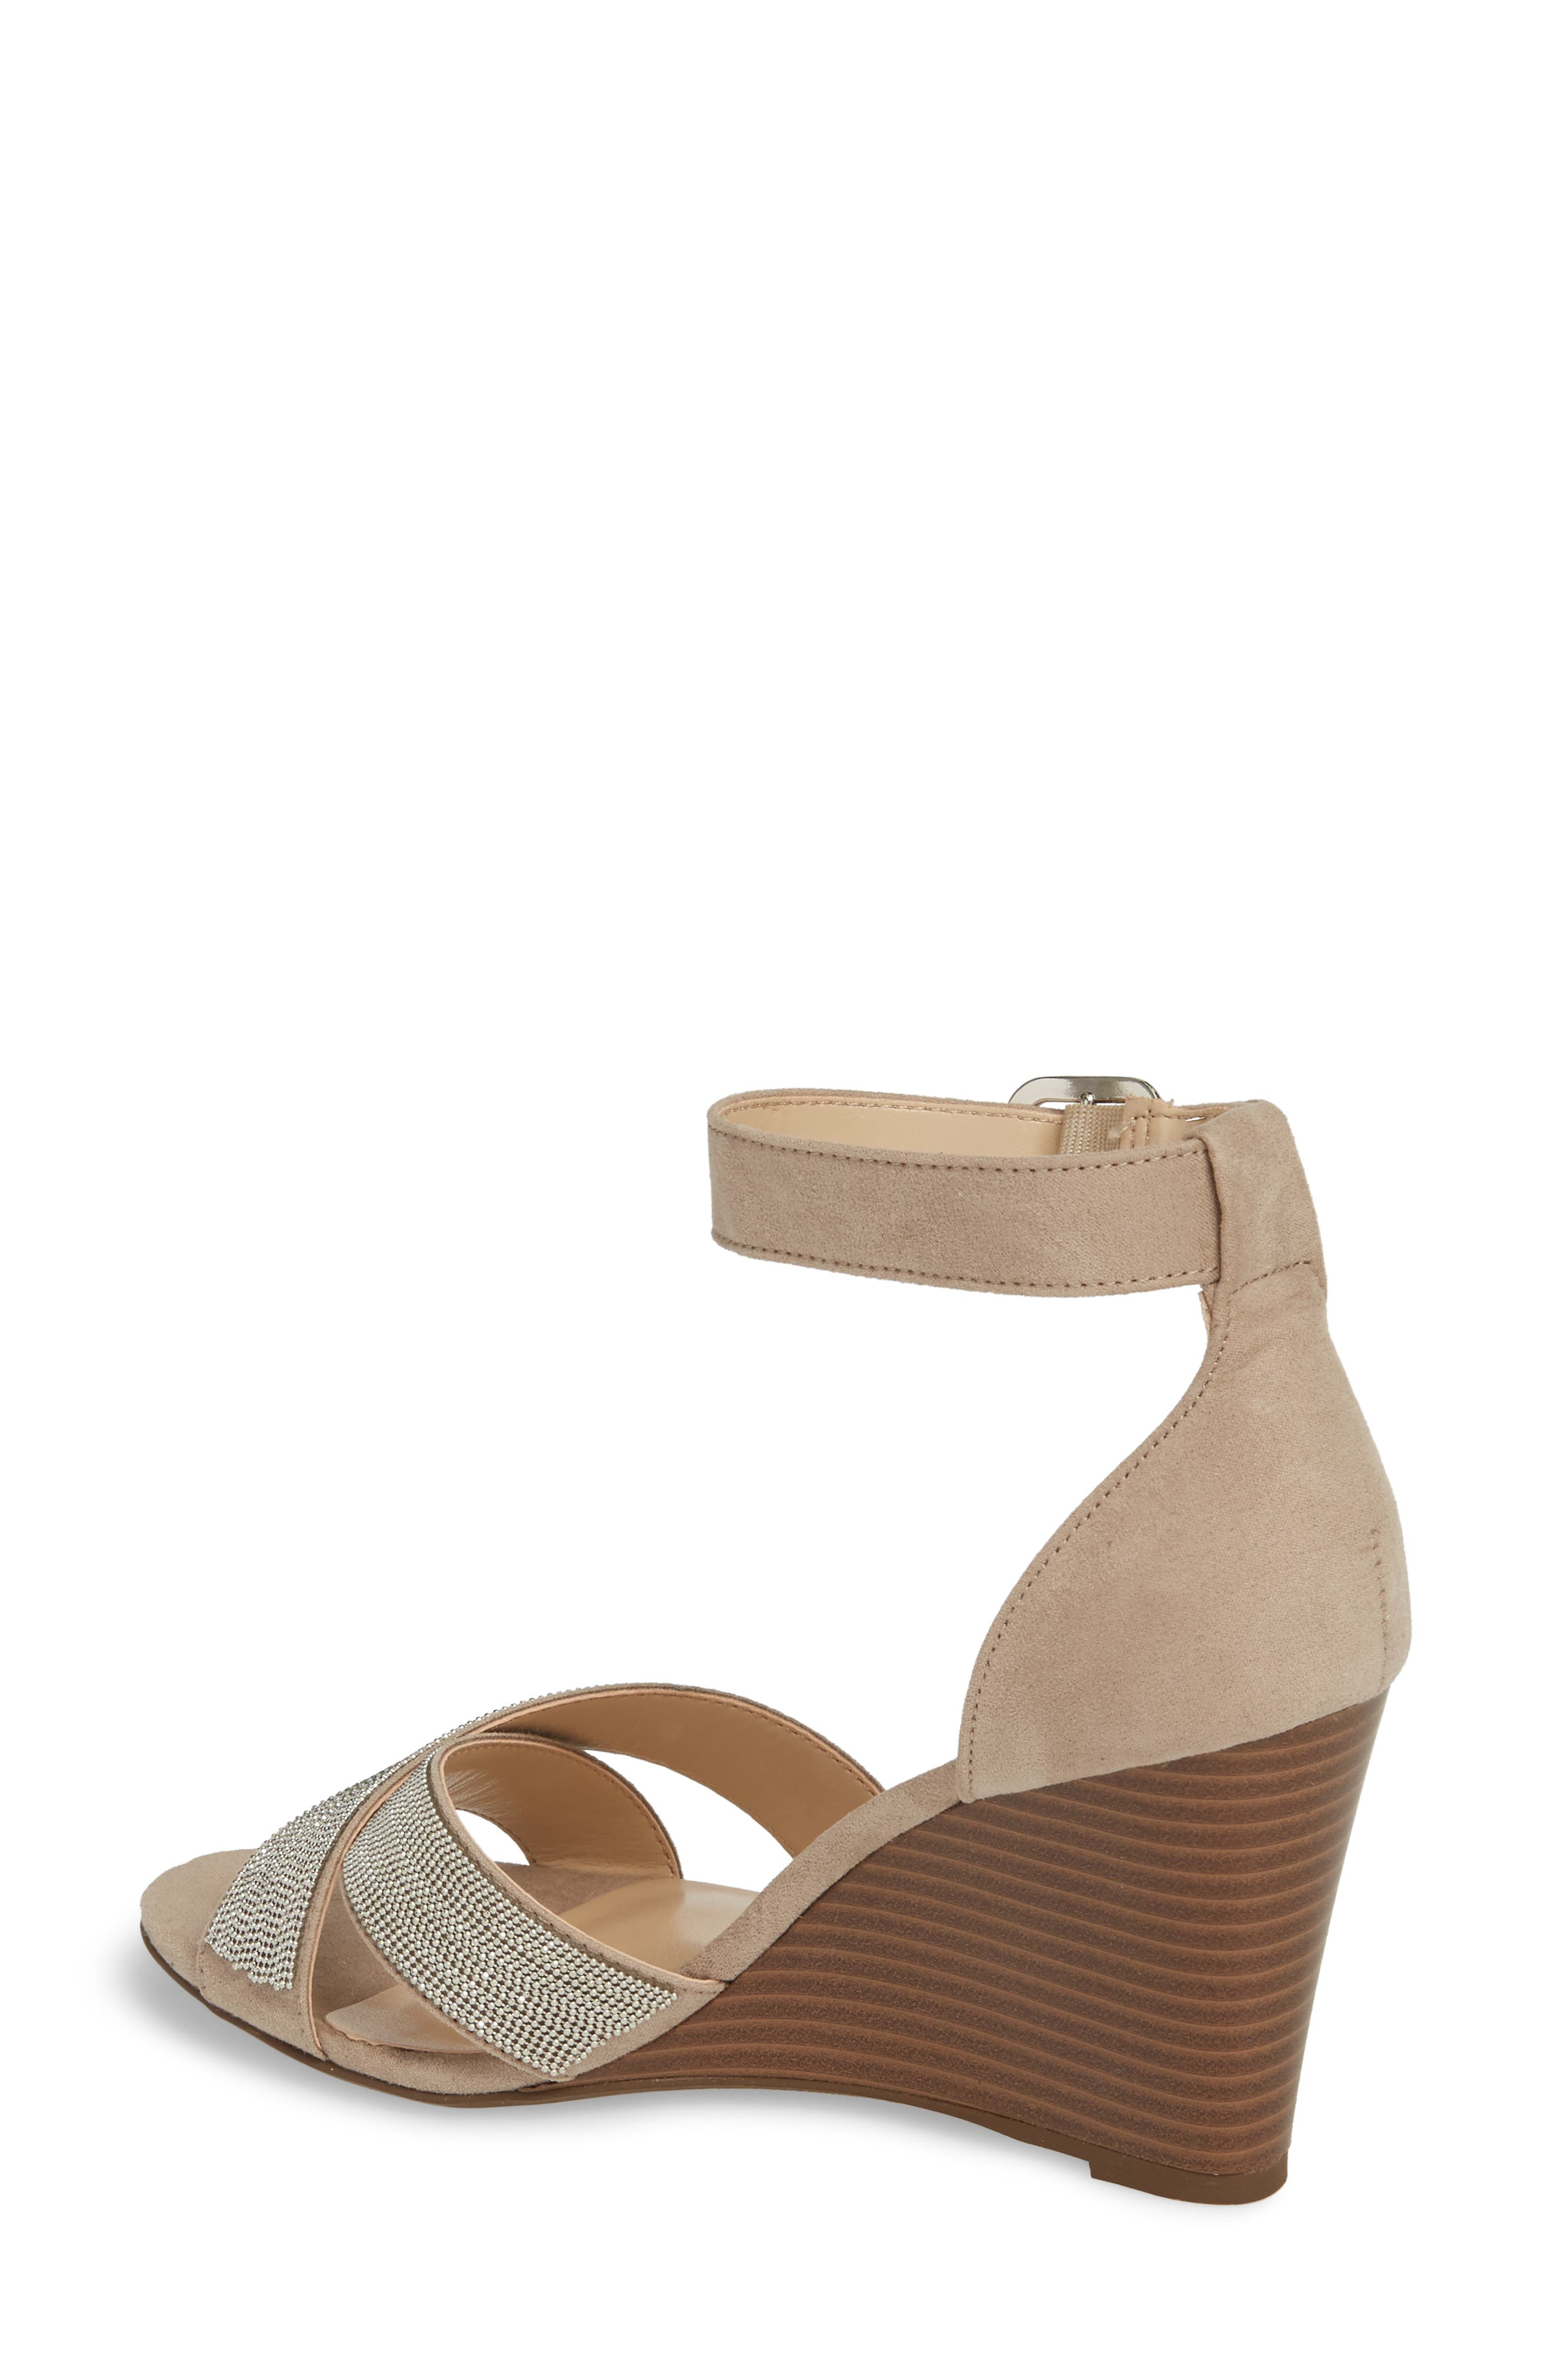 Zorra Wedge Sandal,                             Alternate thumbnail 2, color,                             TAUPE SUEDE